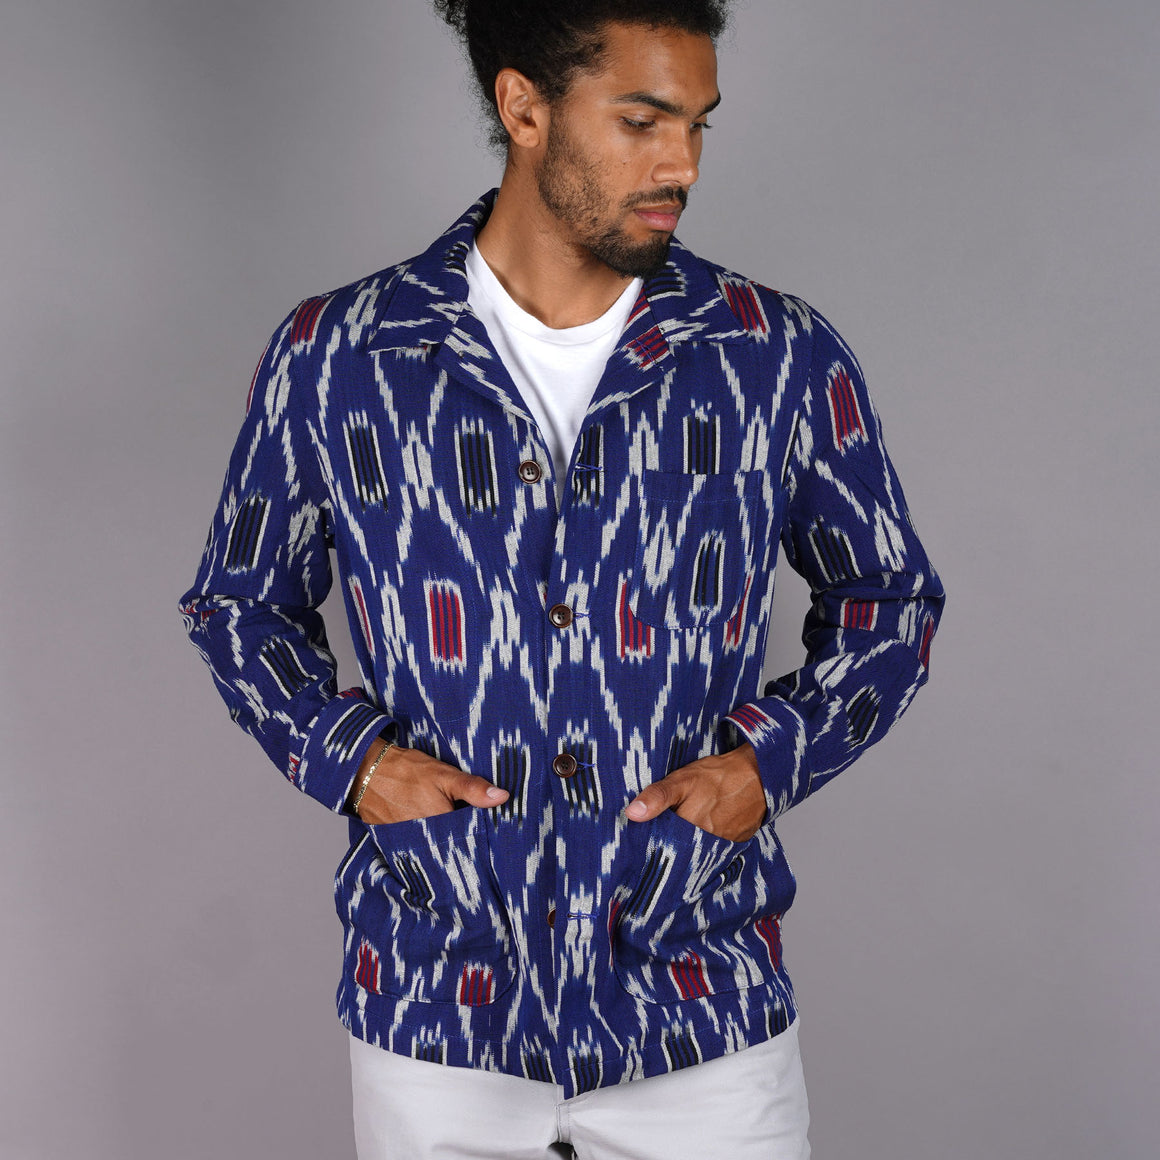 Doyle Jacket Hand-Woven Indigo Ikat Cotton